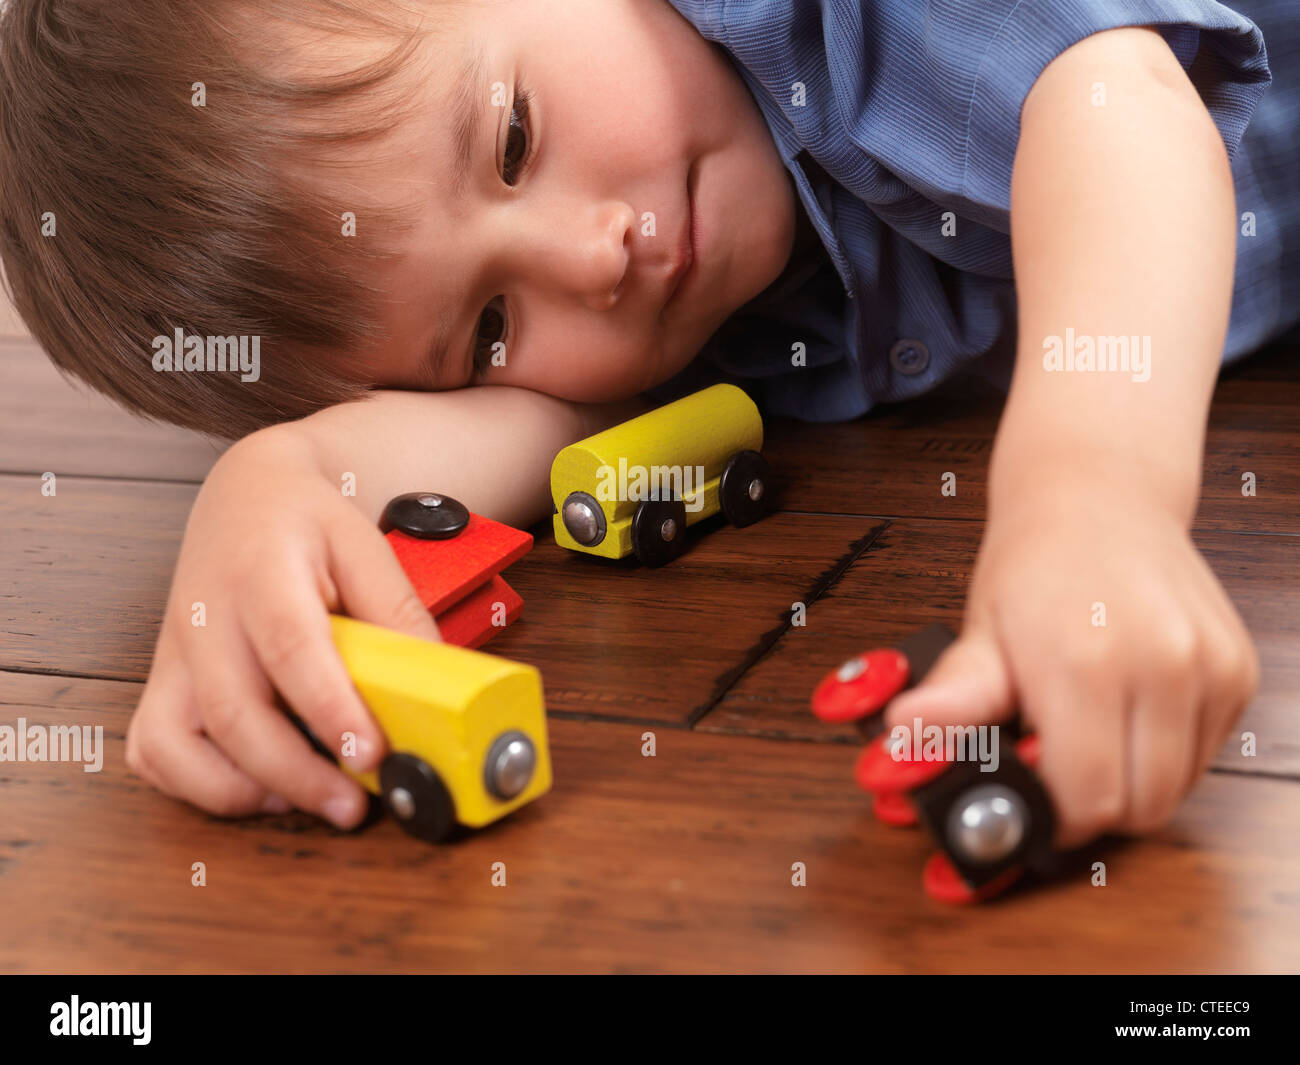 Two year old boy playing with a colorful wooden toy train on hardwood floor - Stock Image